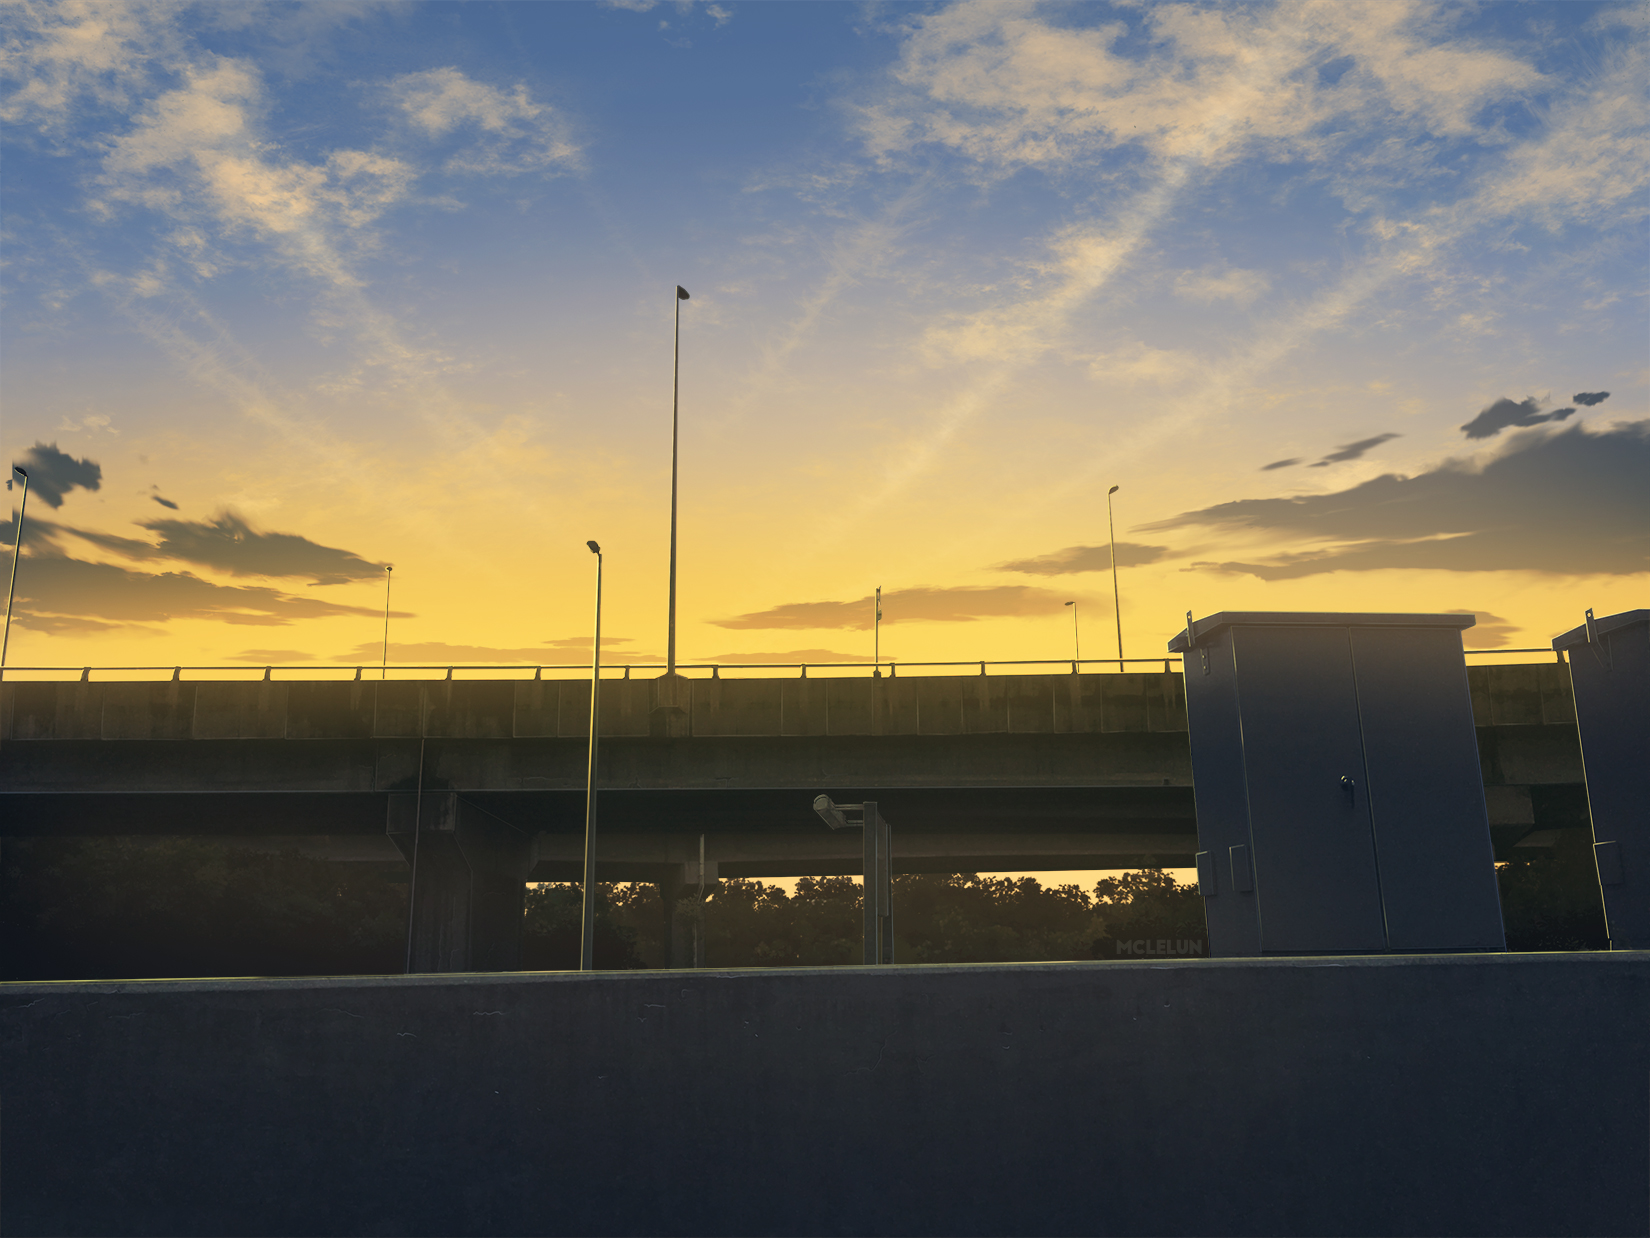 Evening Highway by mclelun